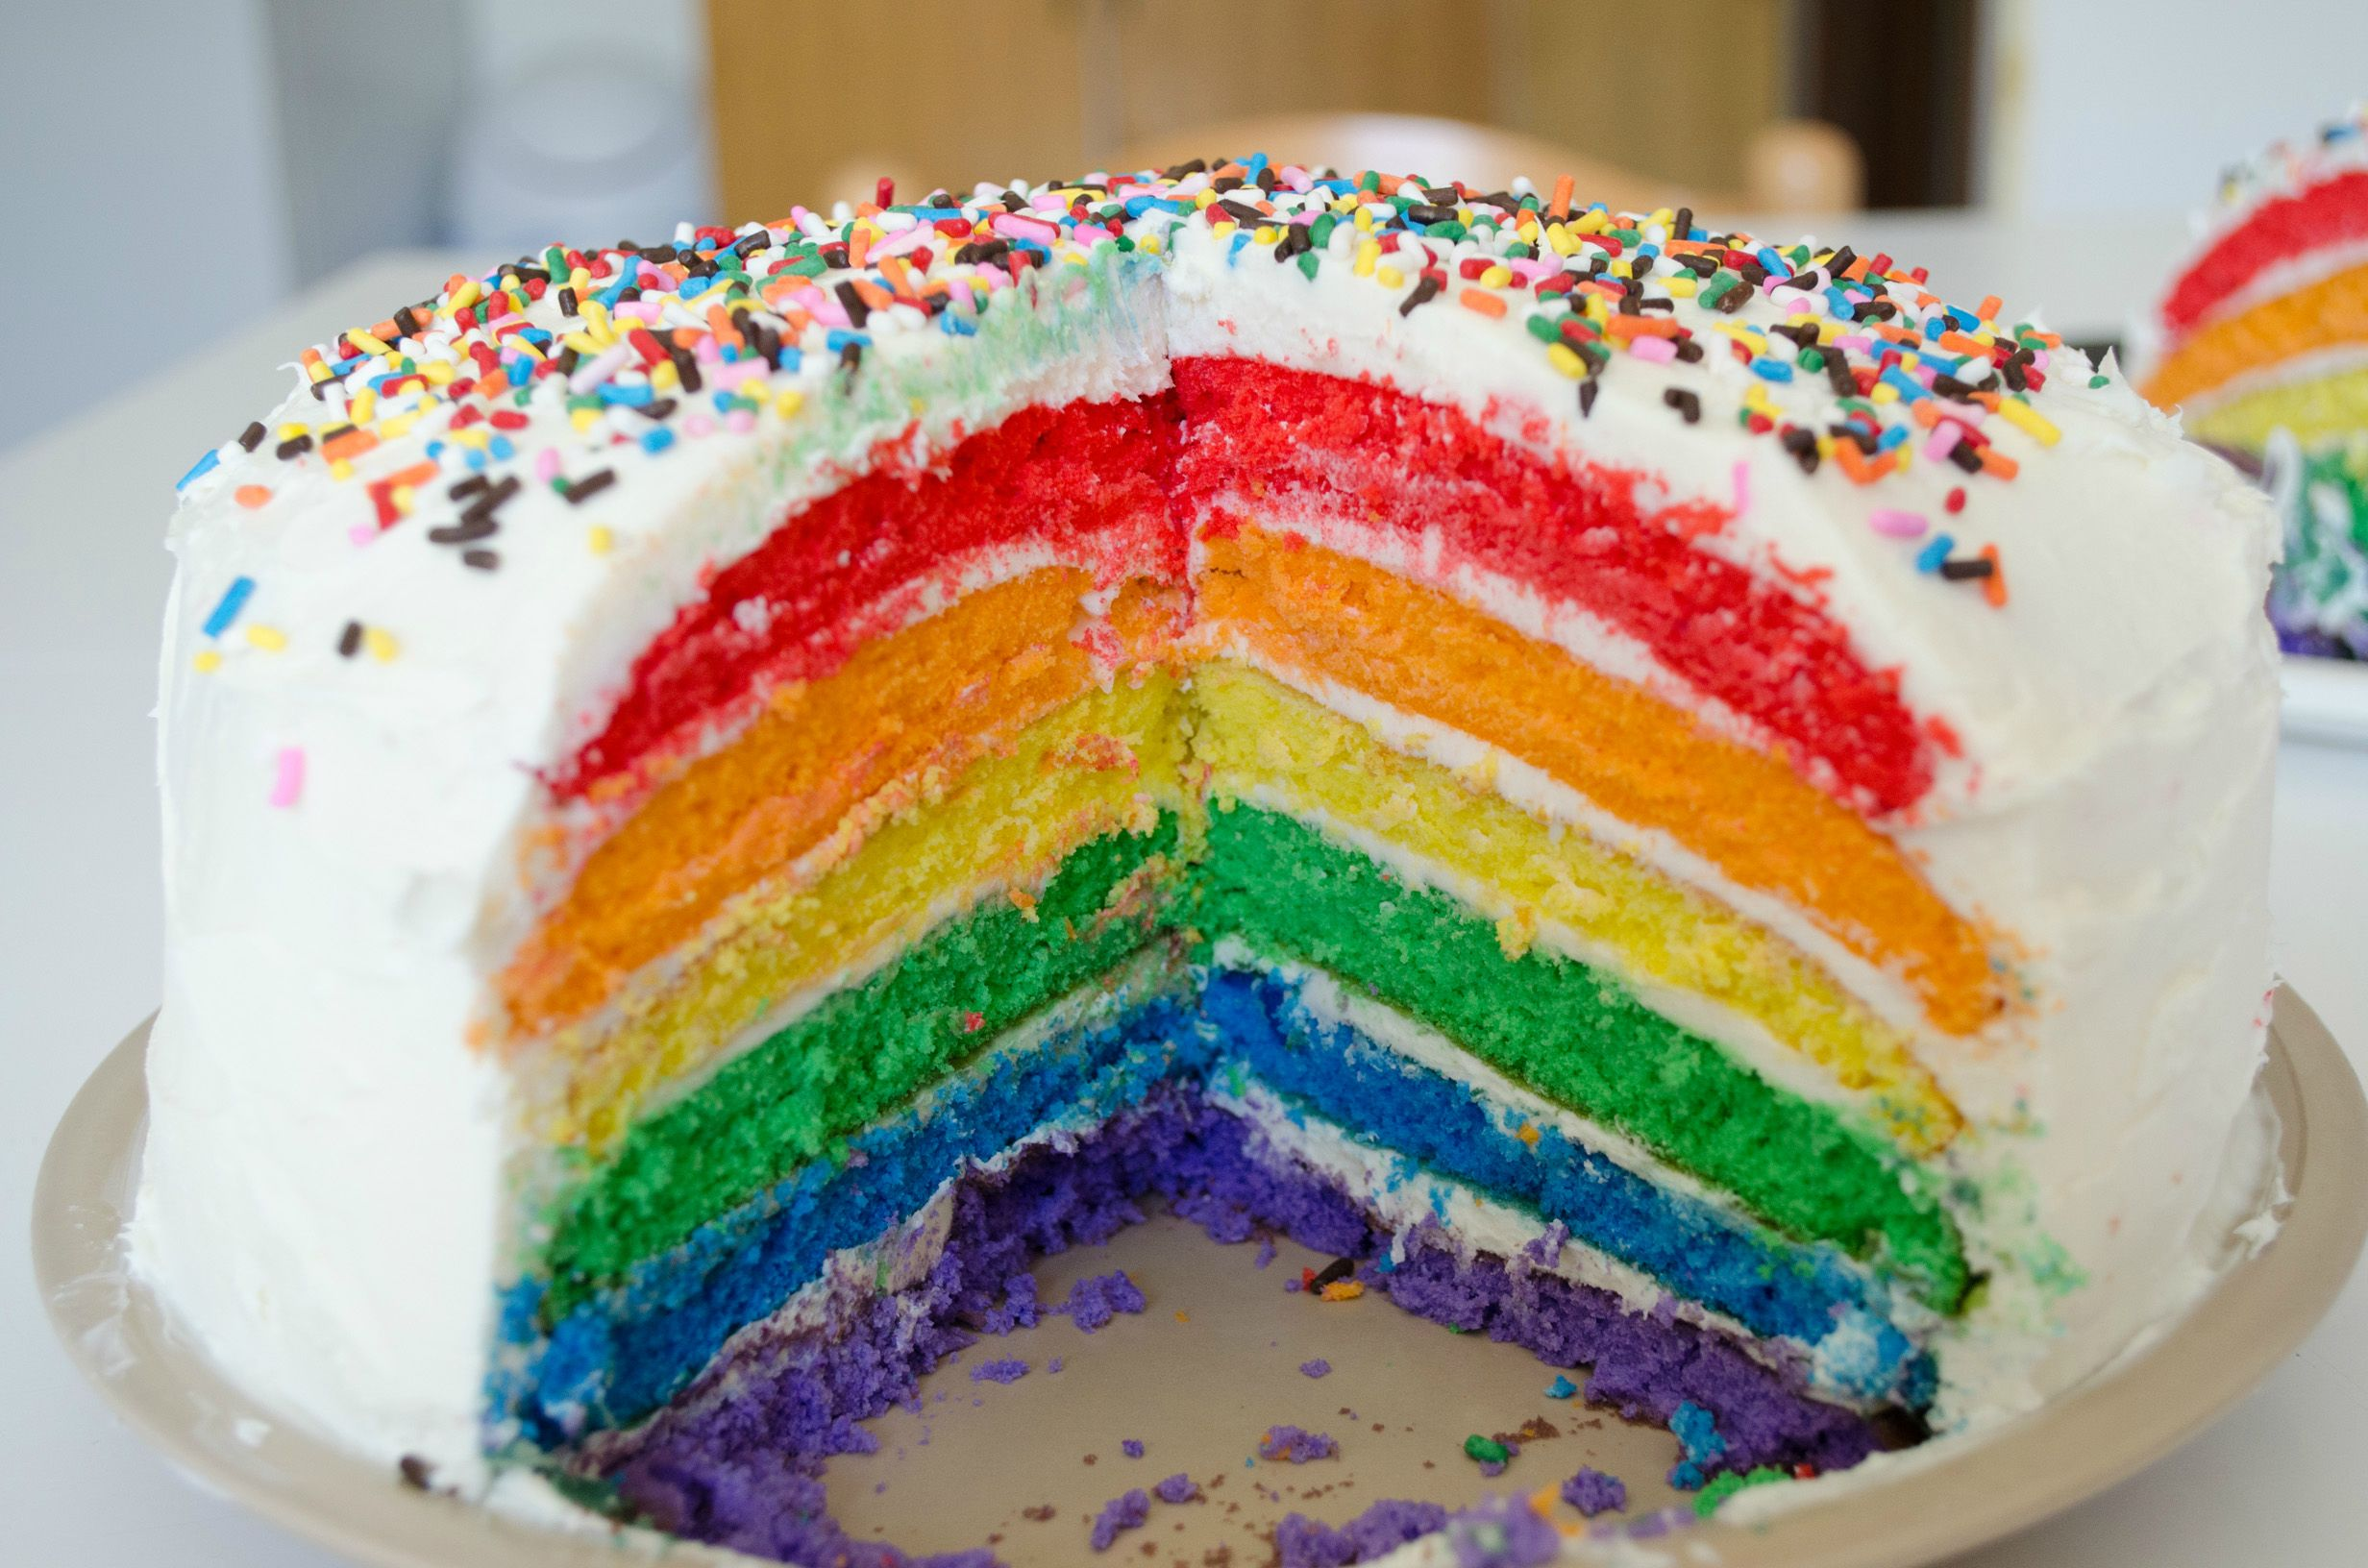 Rainbow Cakes ♡ - Cakes Photo (35204518) - Fanpop